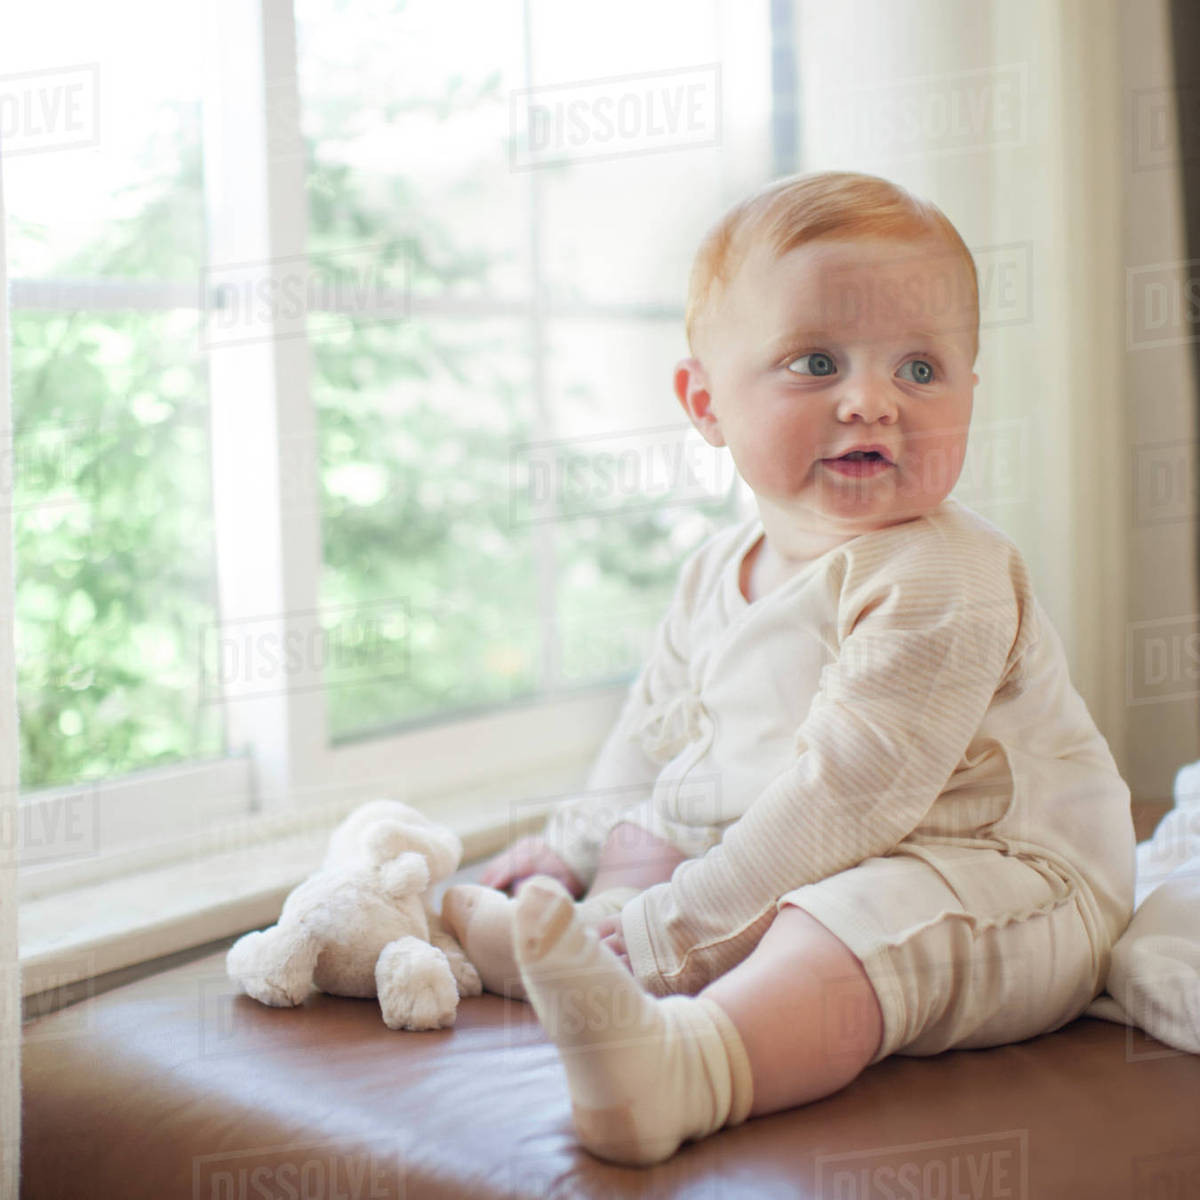 cute baby boy looking away while sitting on sofa against window